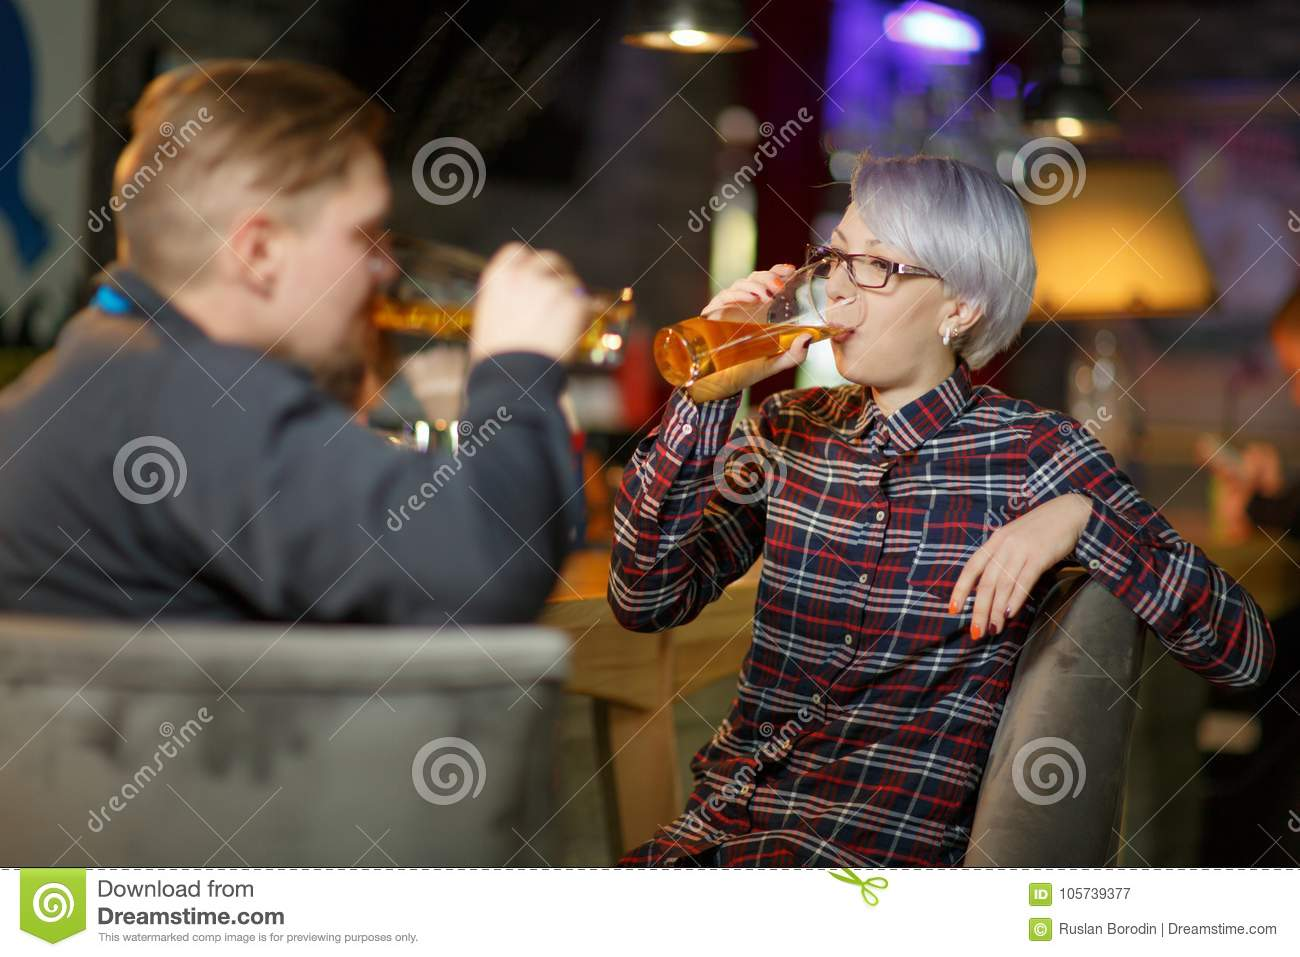 A pair are drinking beer in a bar. Indoors in a public place.